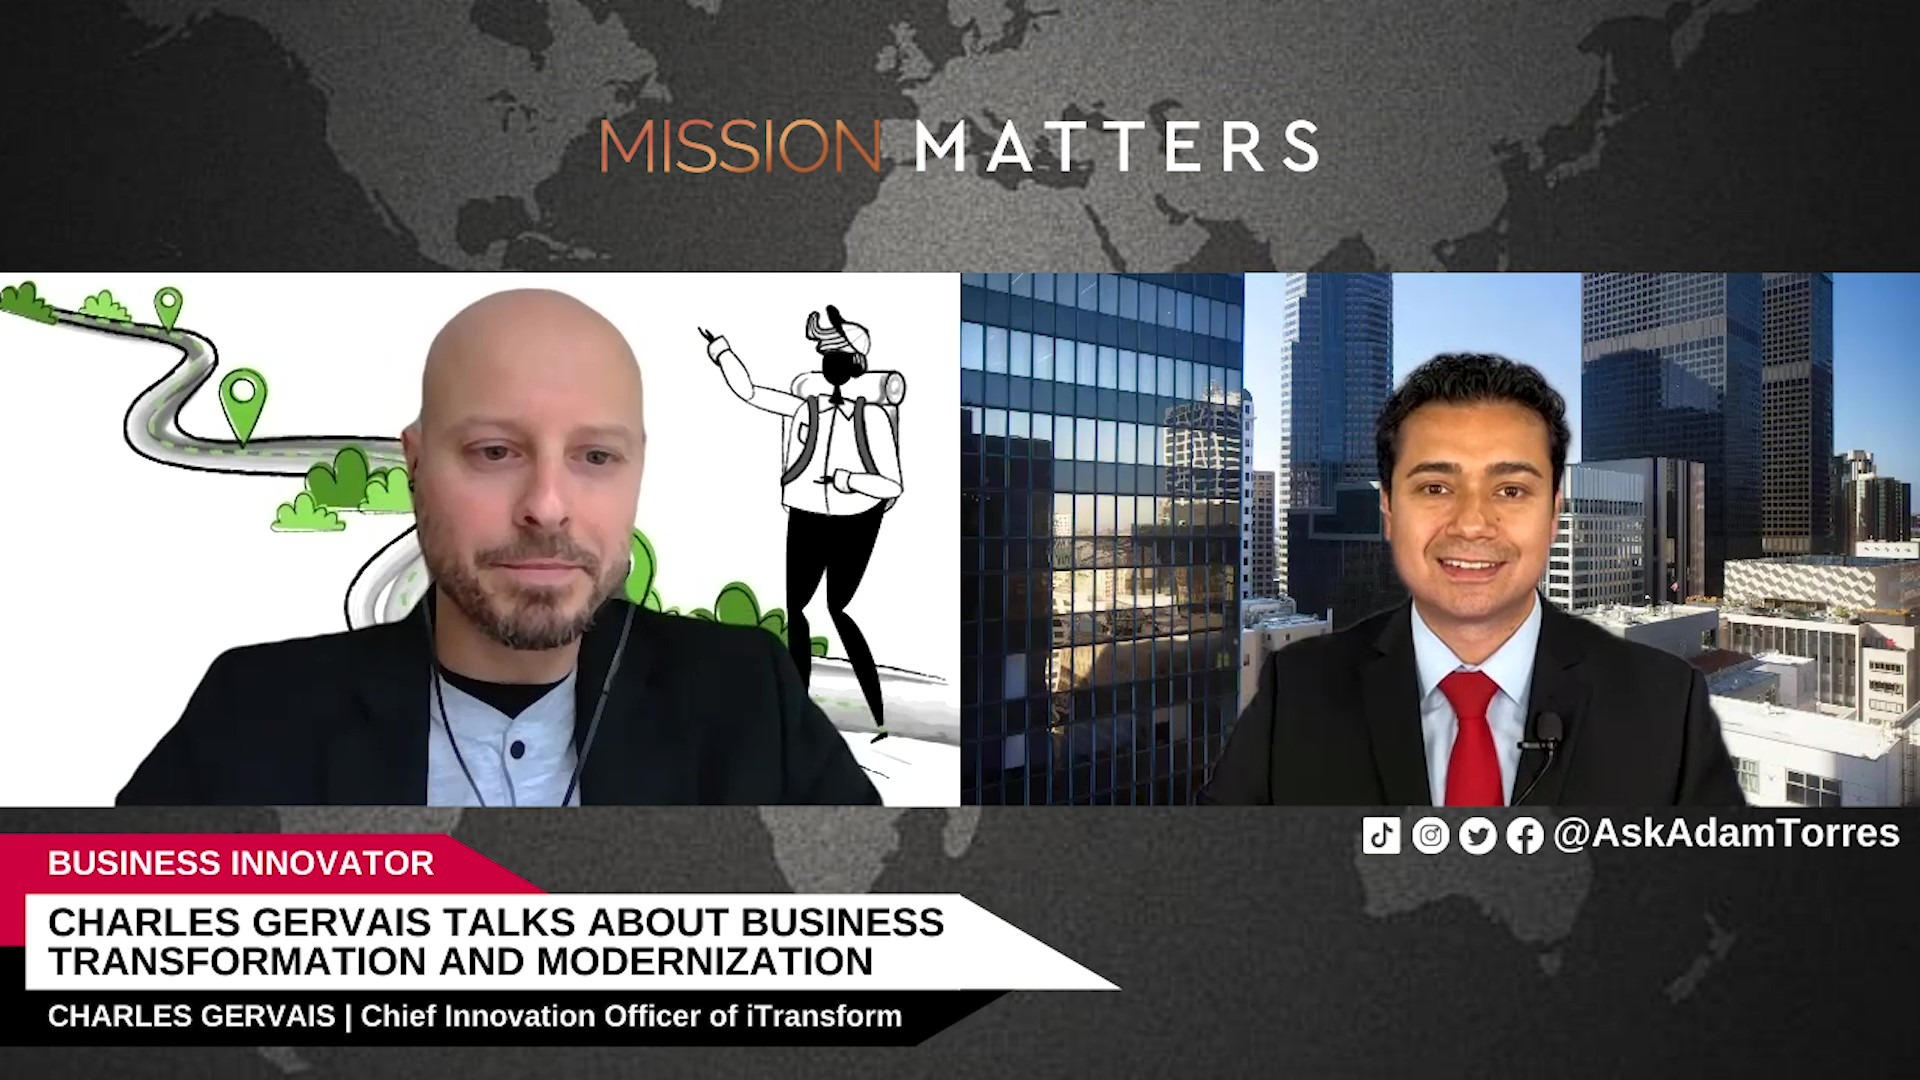 Charles Gervais Talks About Business Transformation And Modernization